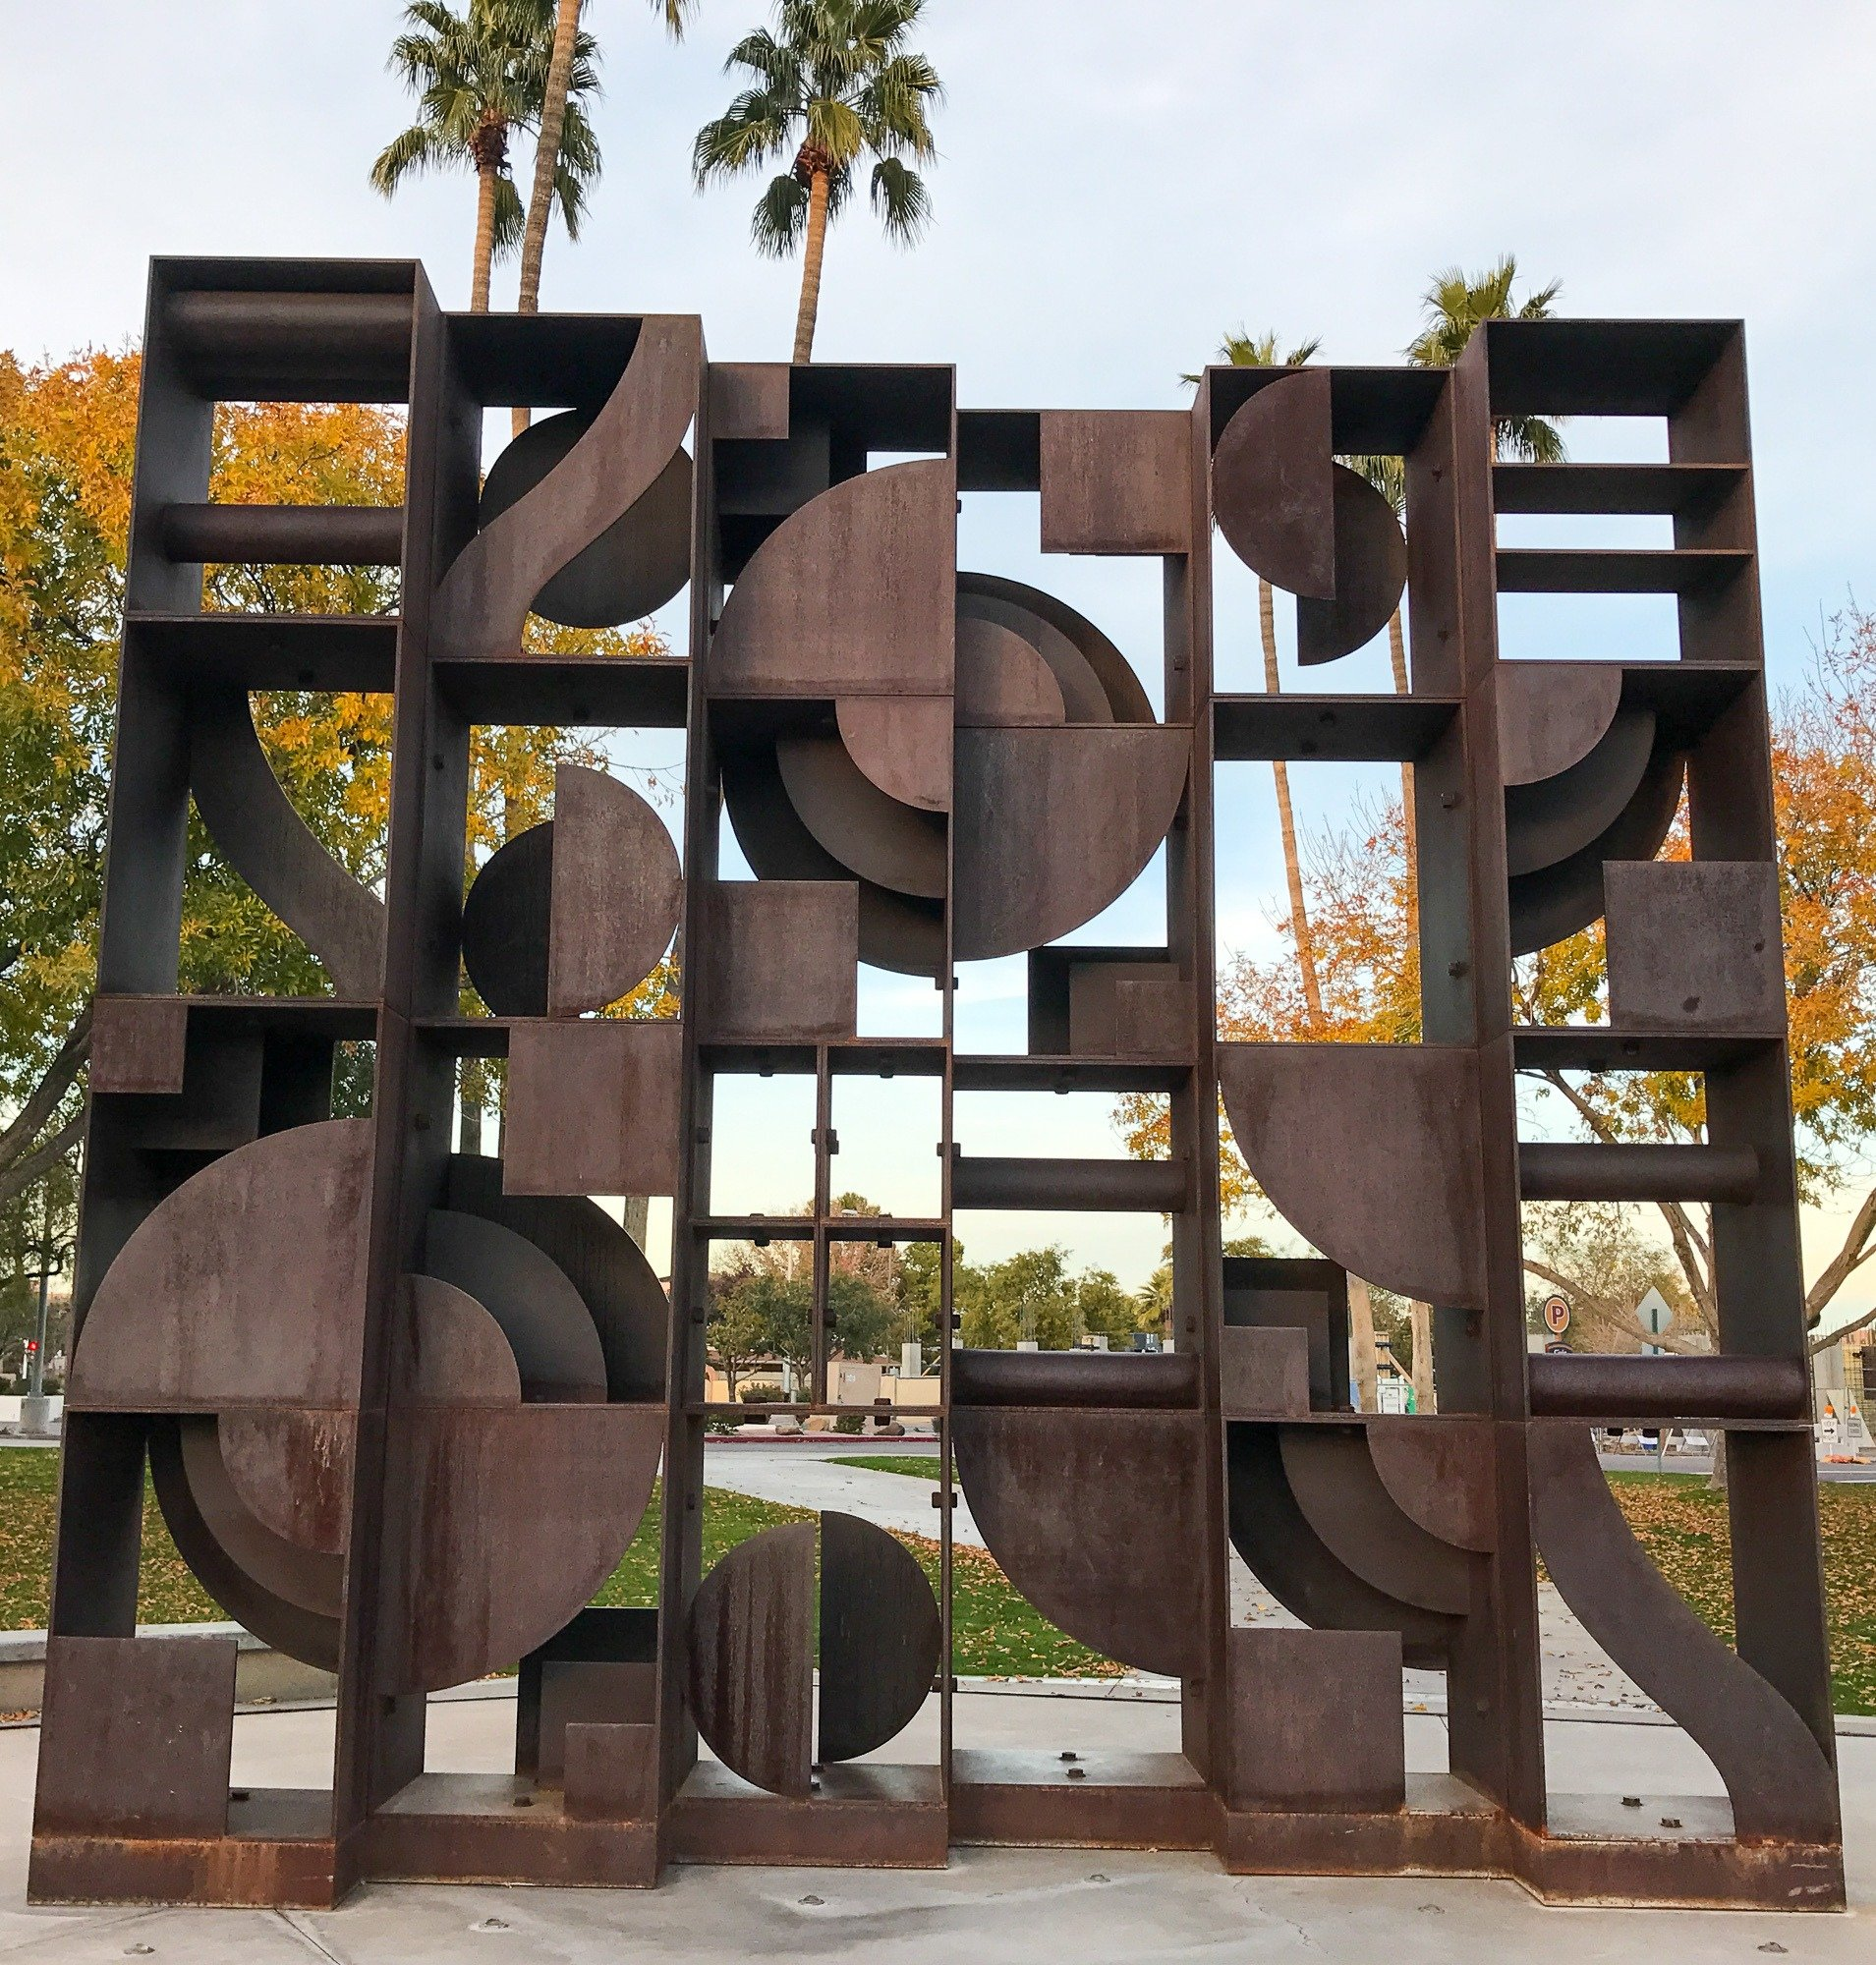 Windows to the West sculpture in the Scottsdale Civic Center Plaza